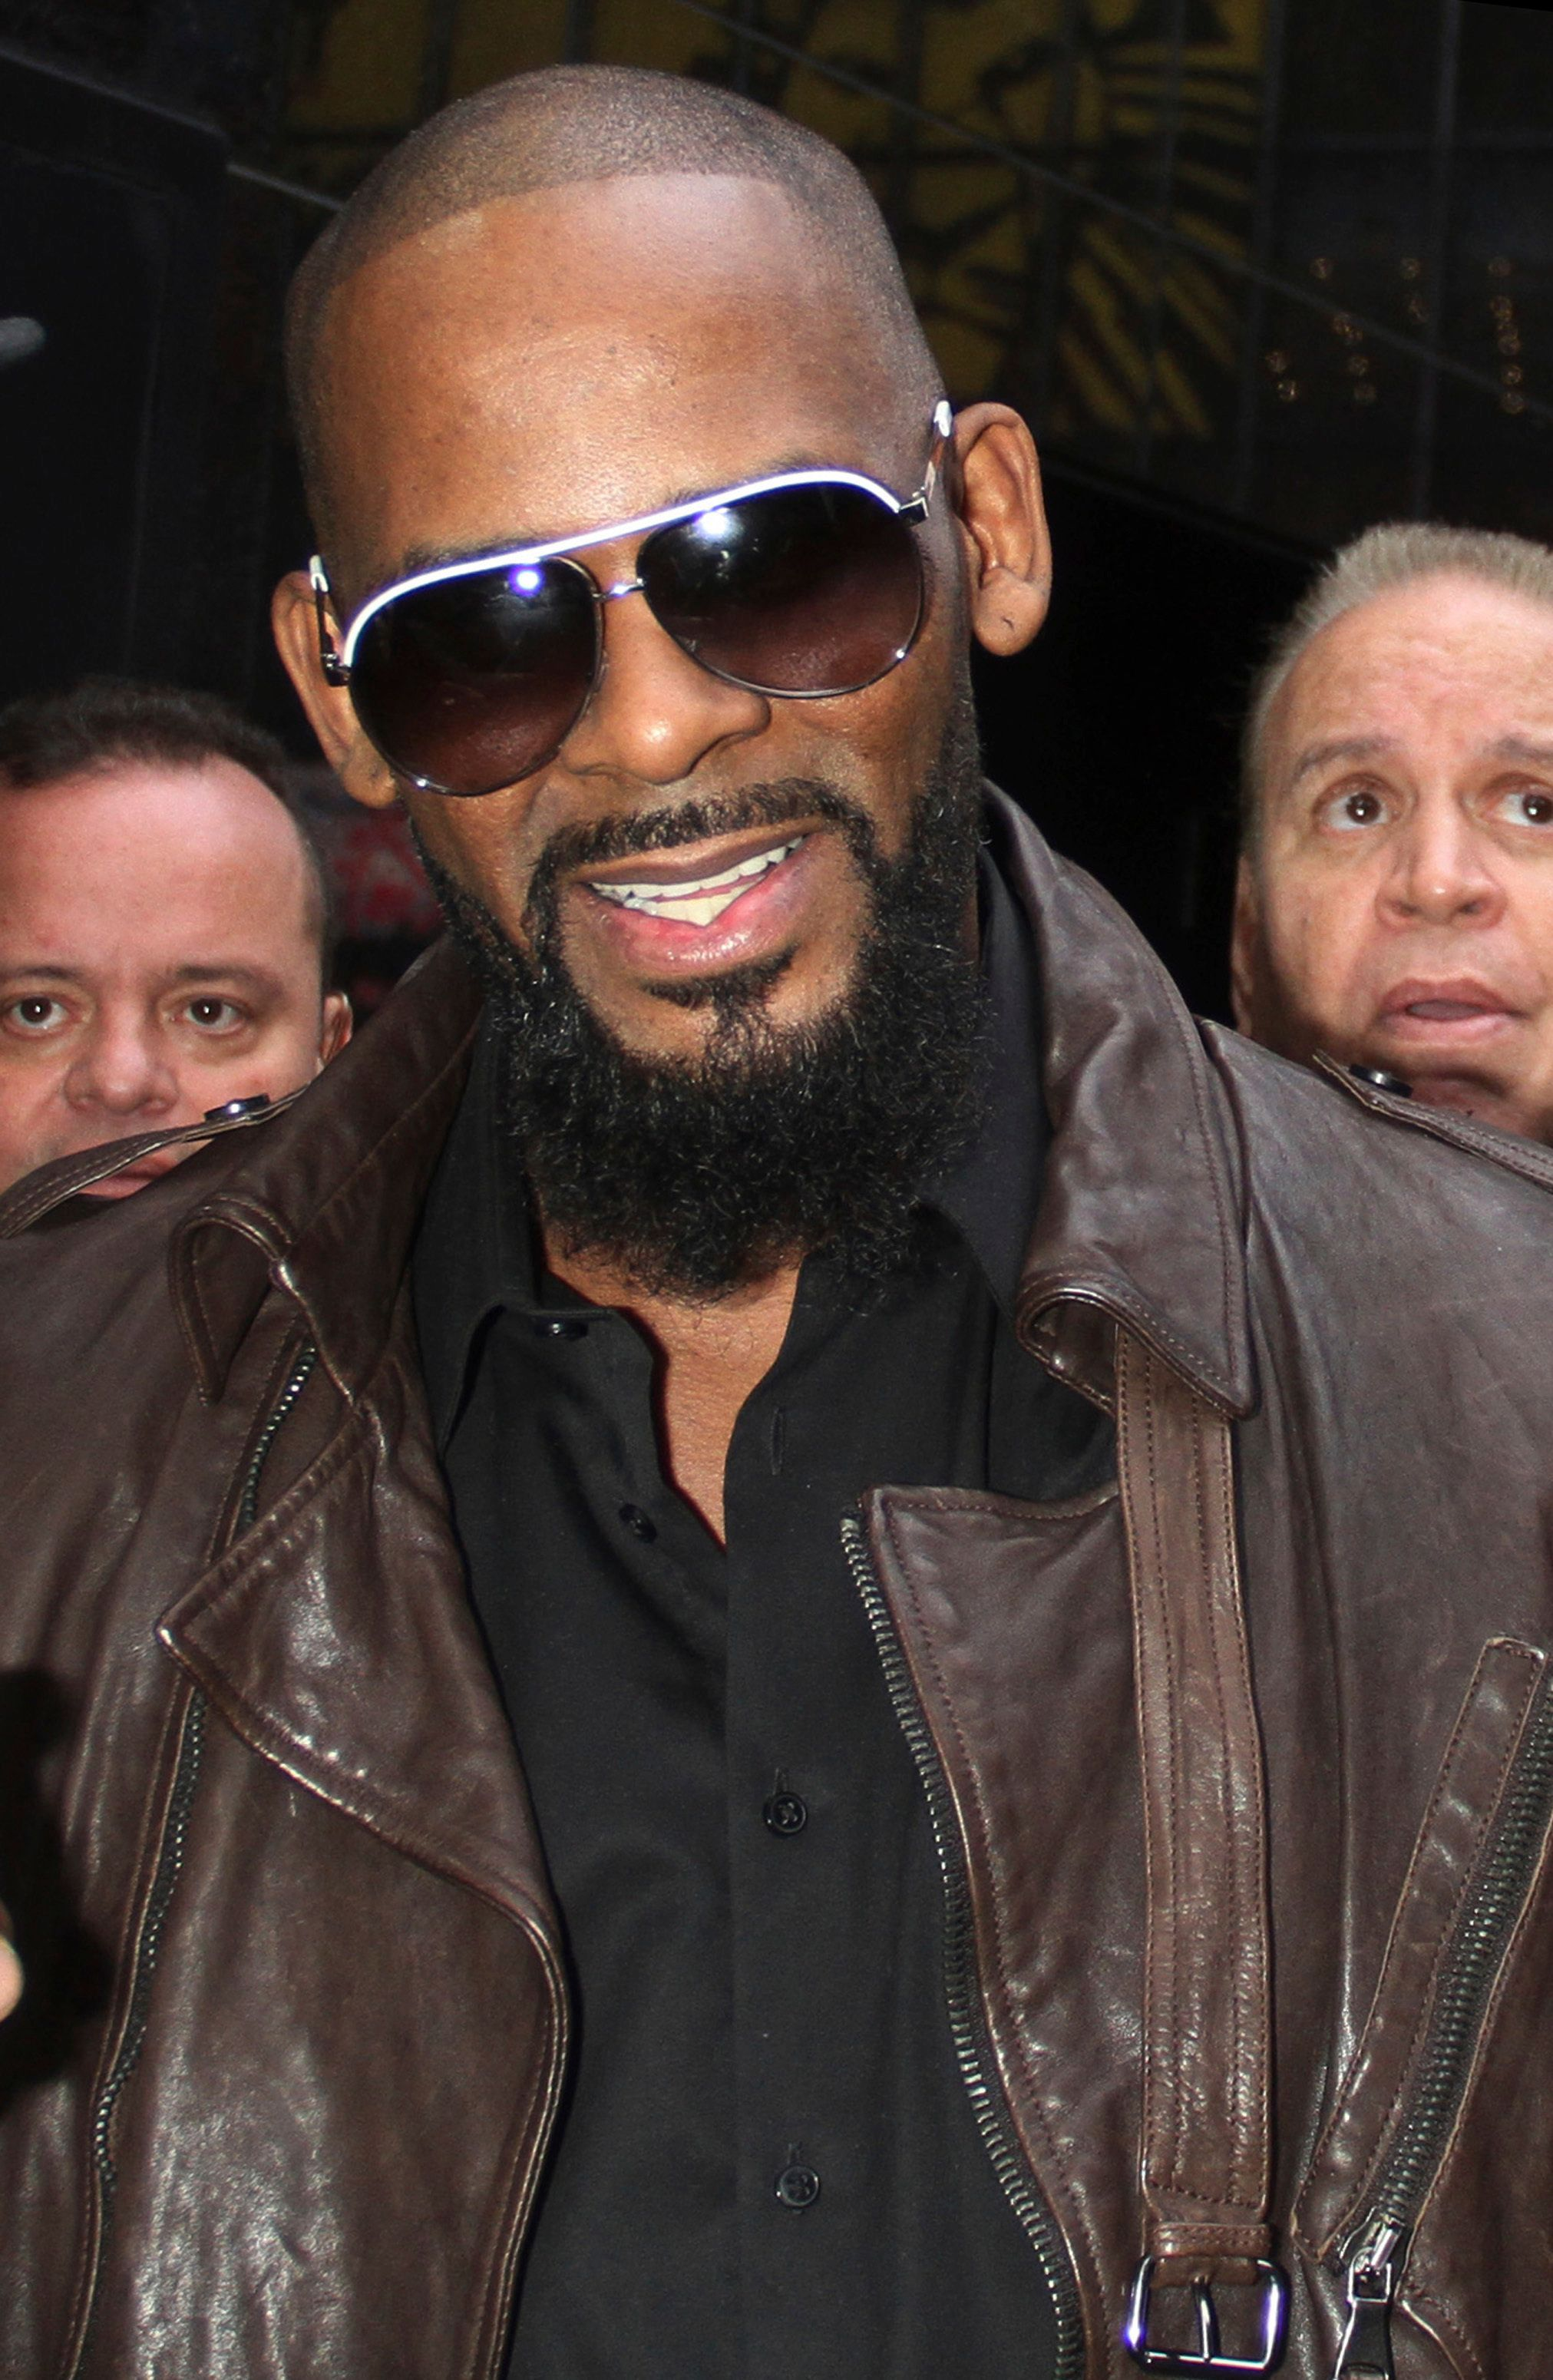 Illinois Officials Deny Permit For R. Kelly-Hosted Concert, Citing Security